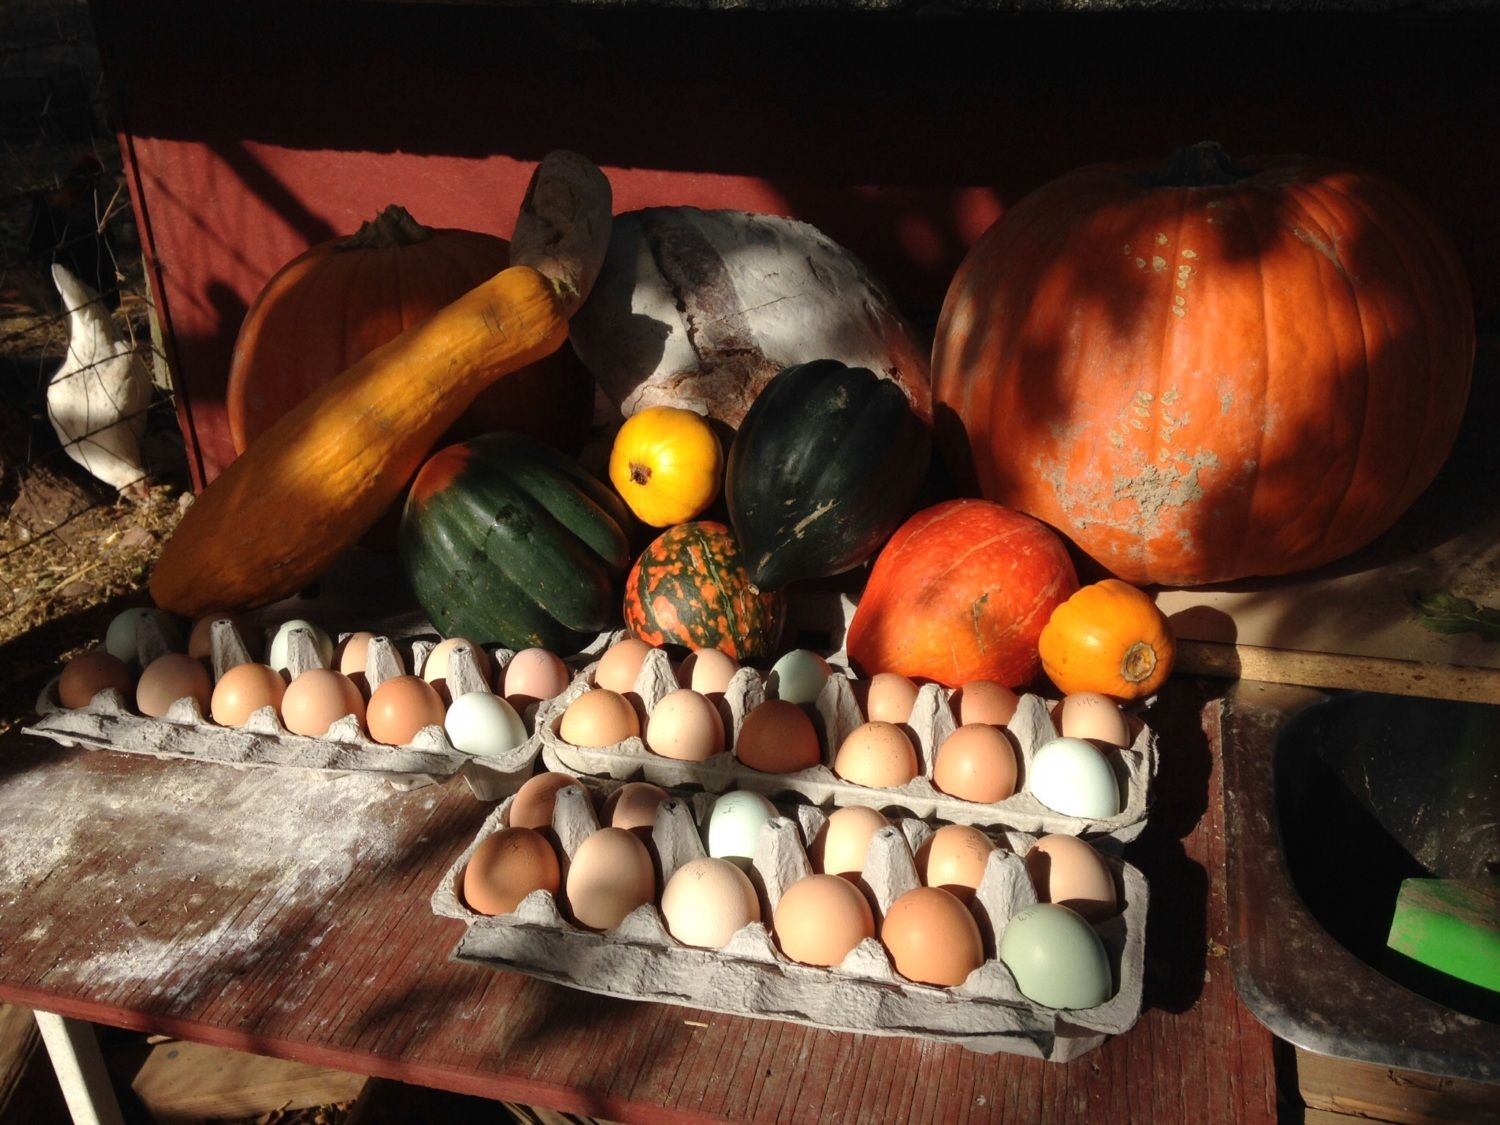 Fall 2014 - from the farm